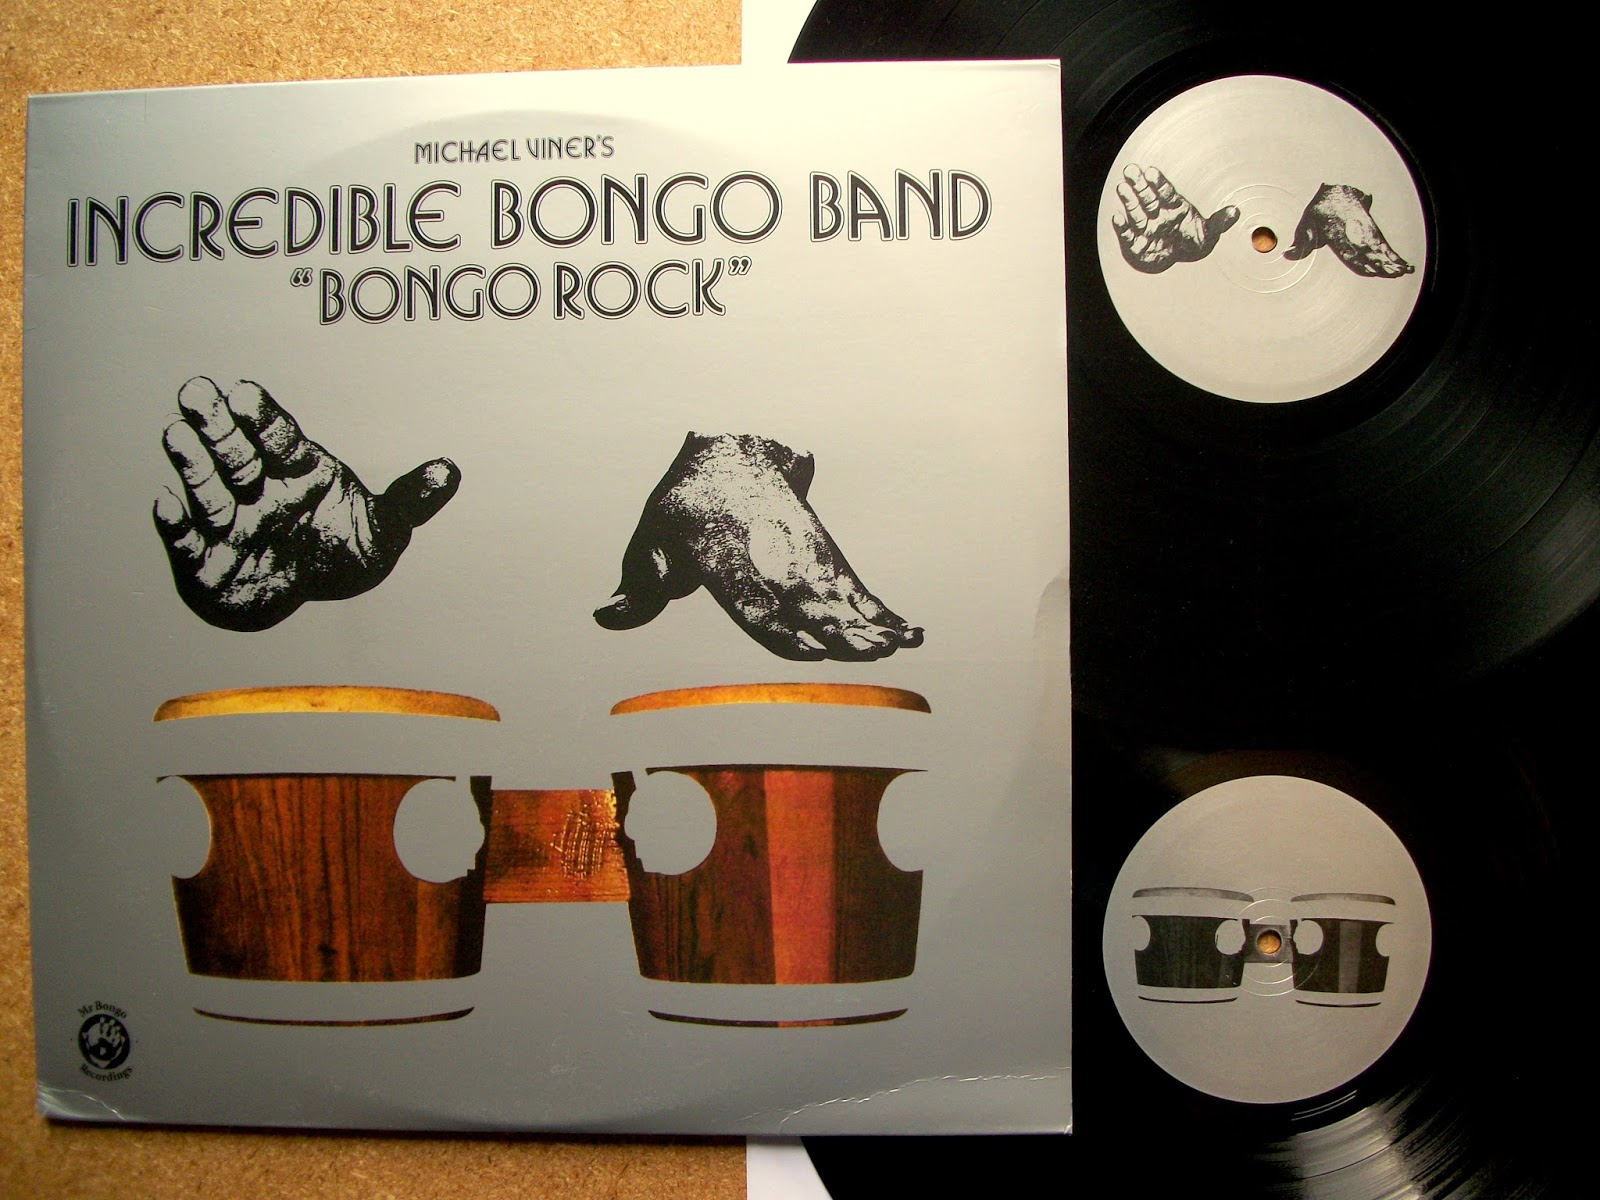 Michael Viner's Incredible Bongo Band - Bongo Rock